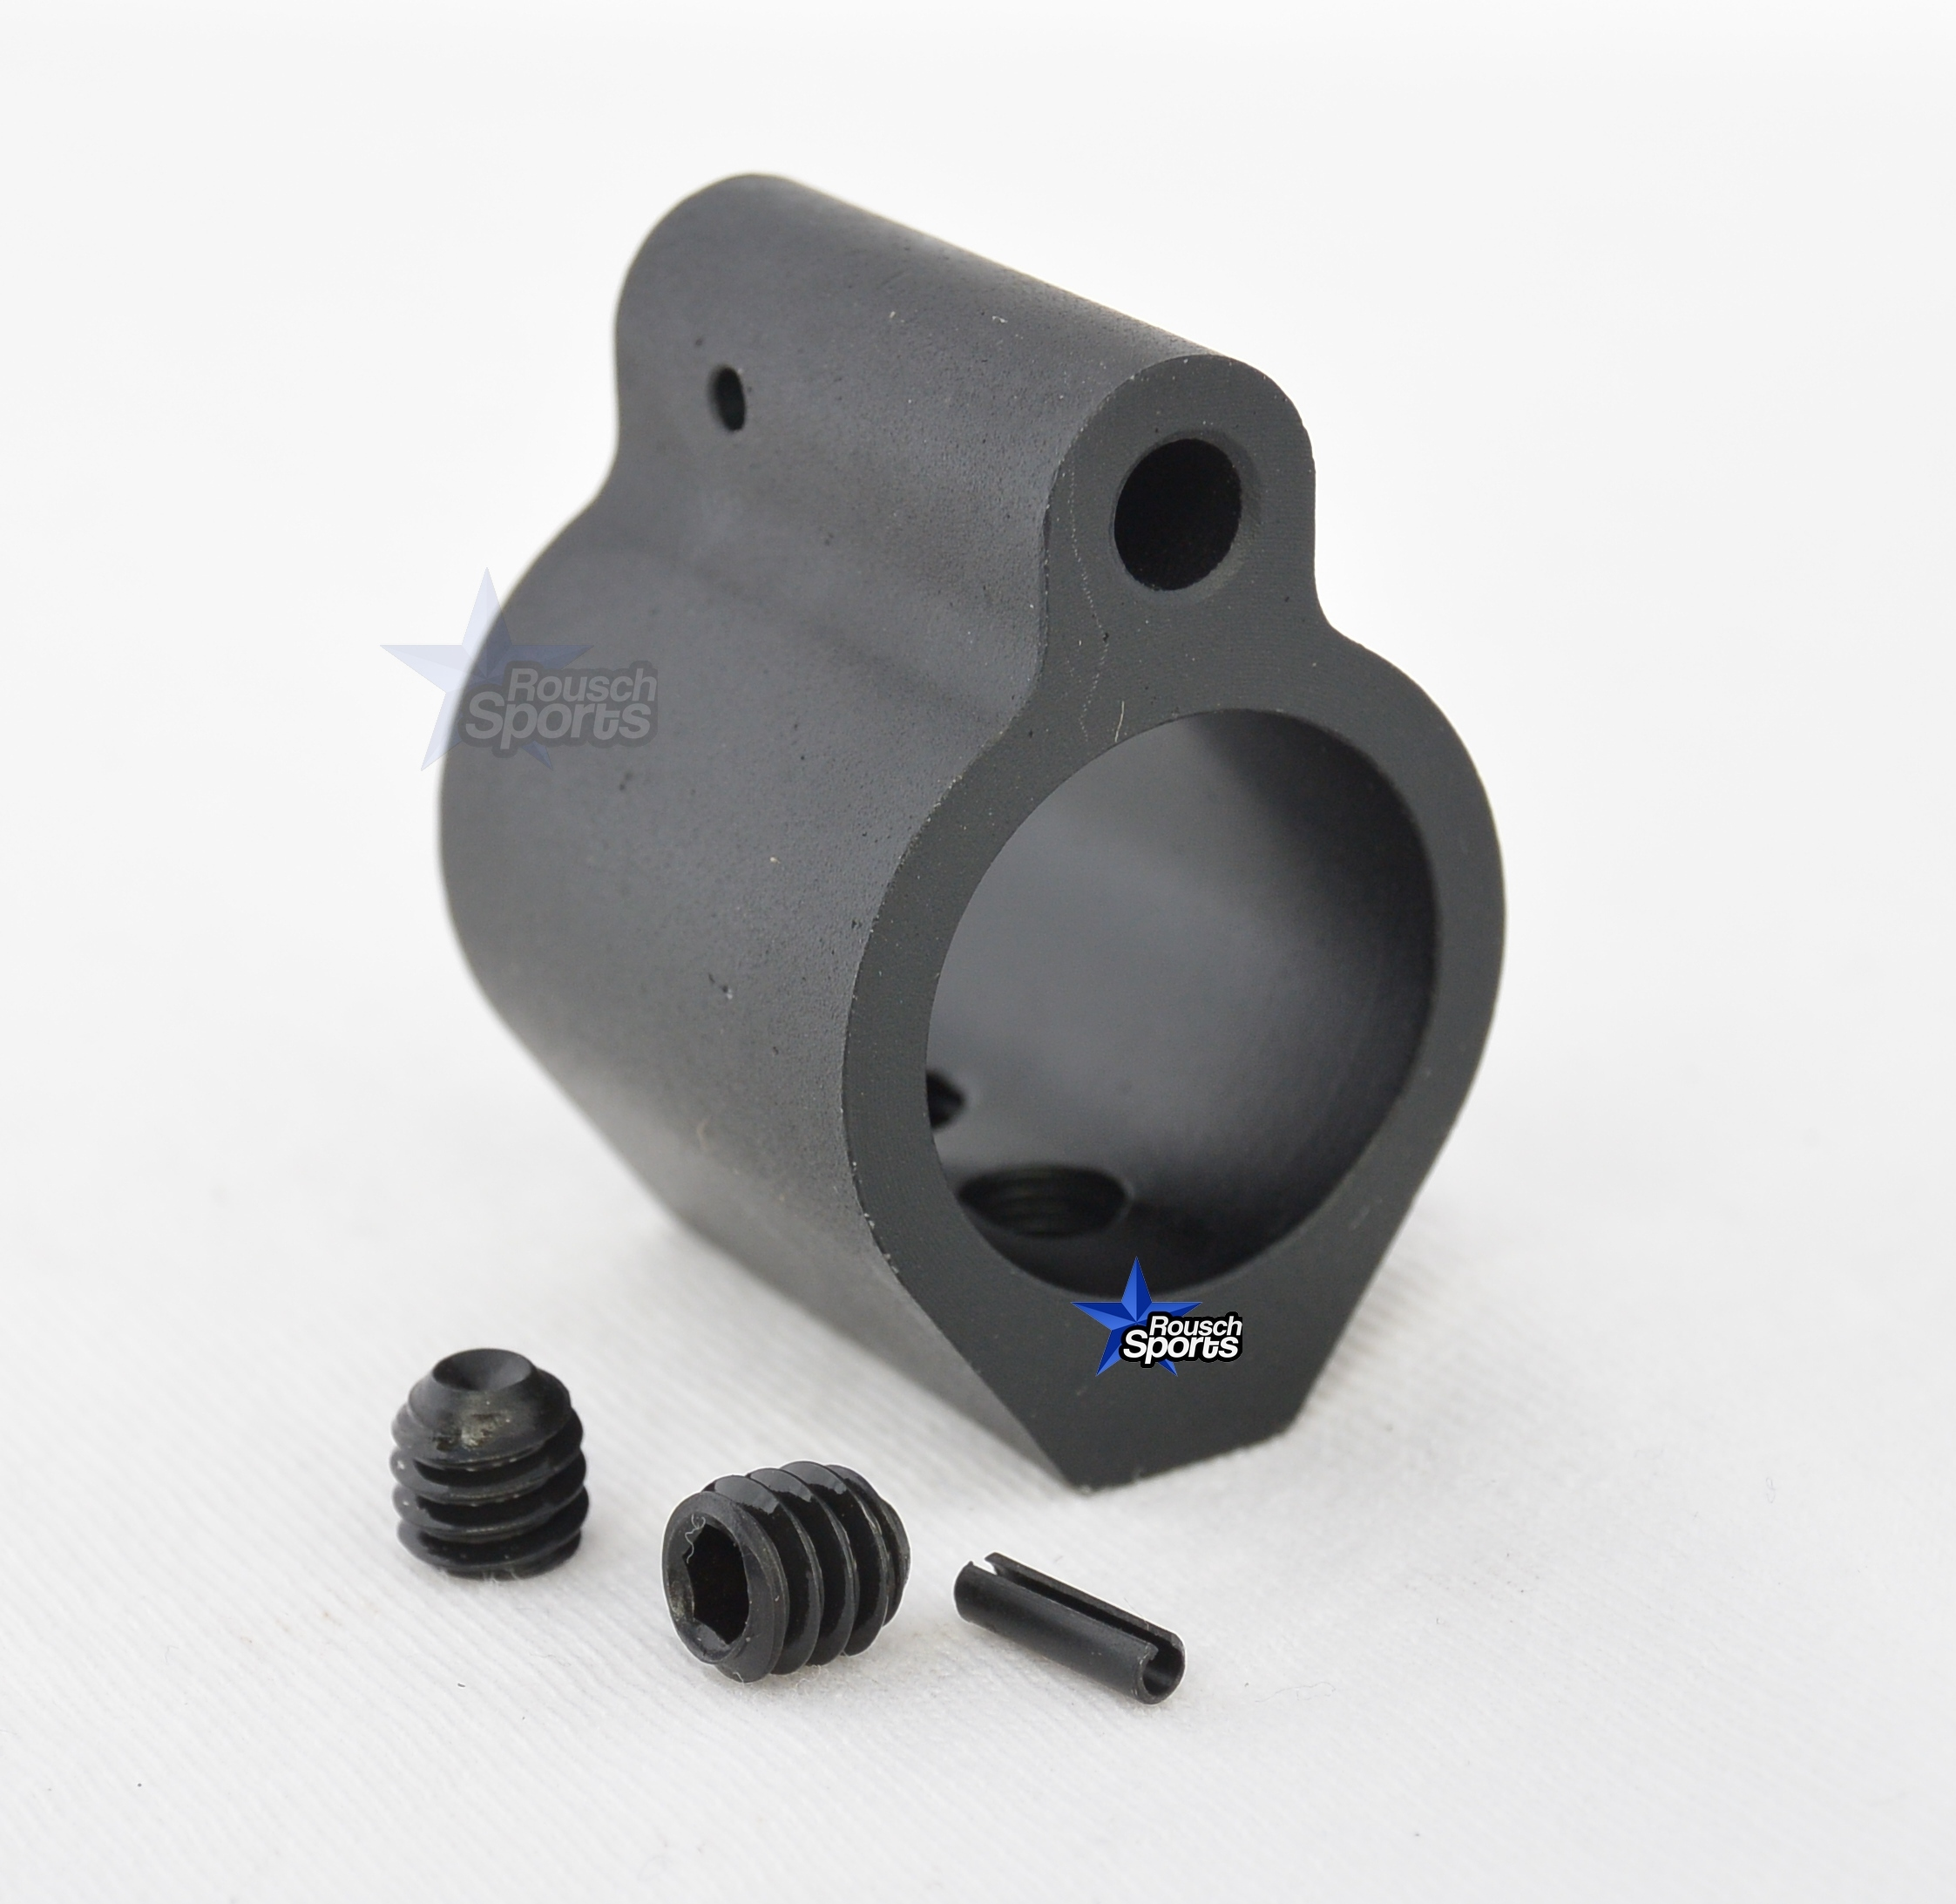 Low Profile Micro Gas Block Aluminum .750 M16 AR15 M4 Austin Texas